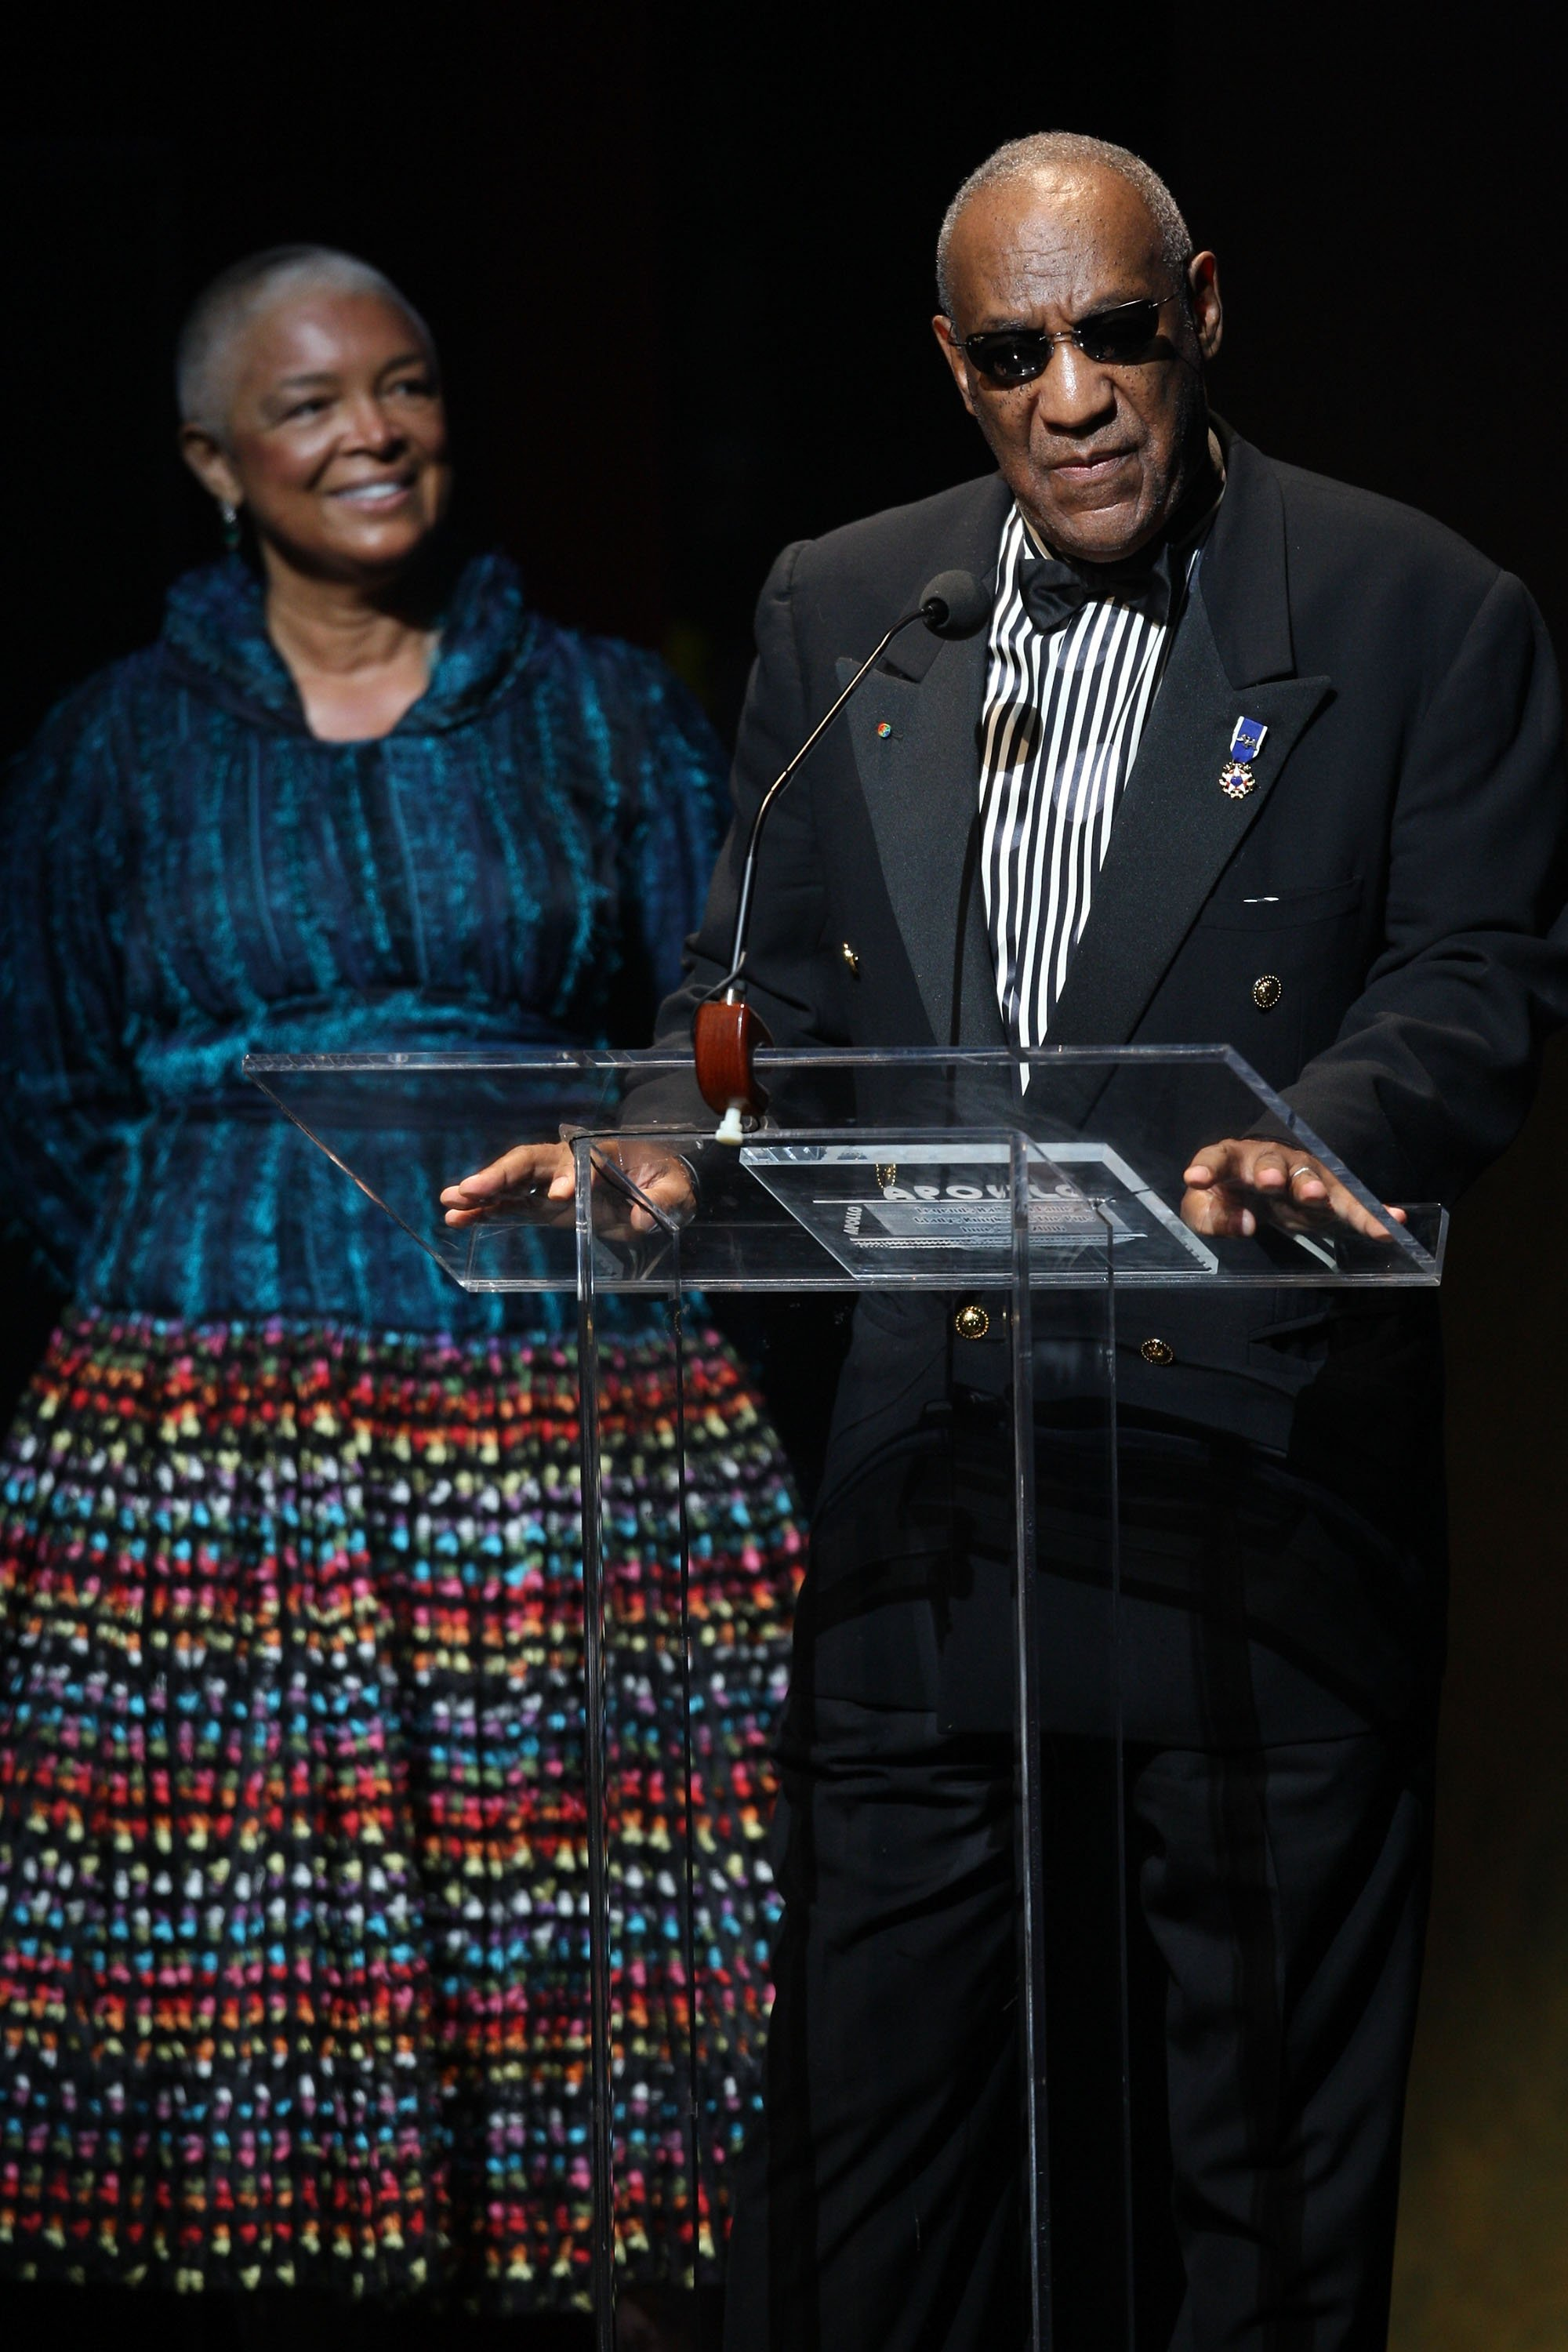 Bill Cosby and his wife Camille Cosby speak onstage at the Apollo Theater 75th Anniversary Gala at The Apollo Theater on June 8, 2009, in New York City. | Source: Getty Images.